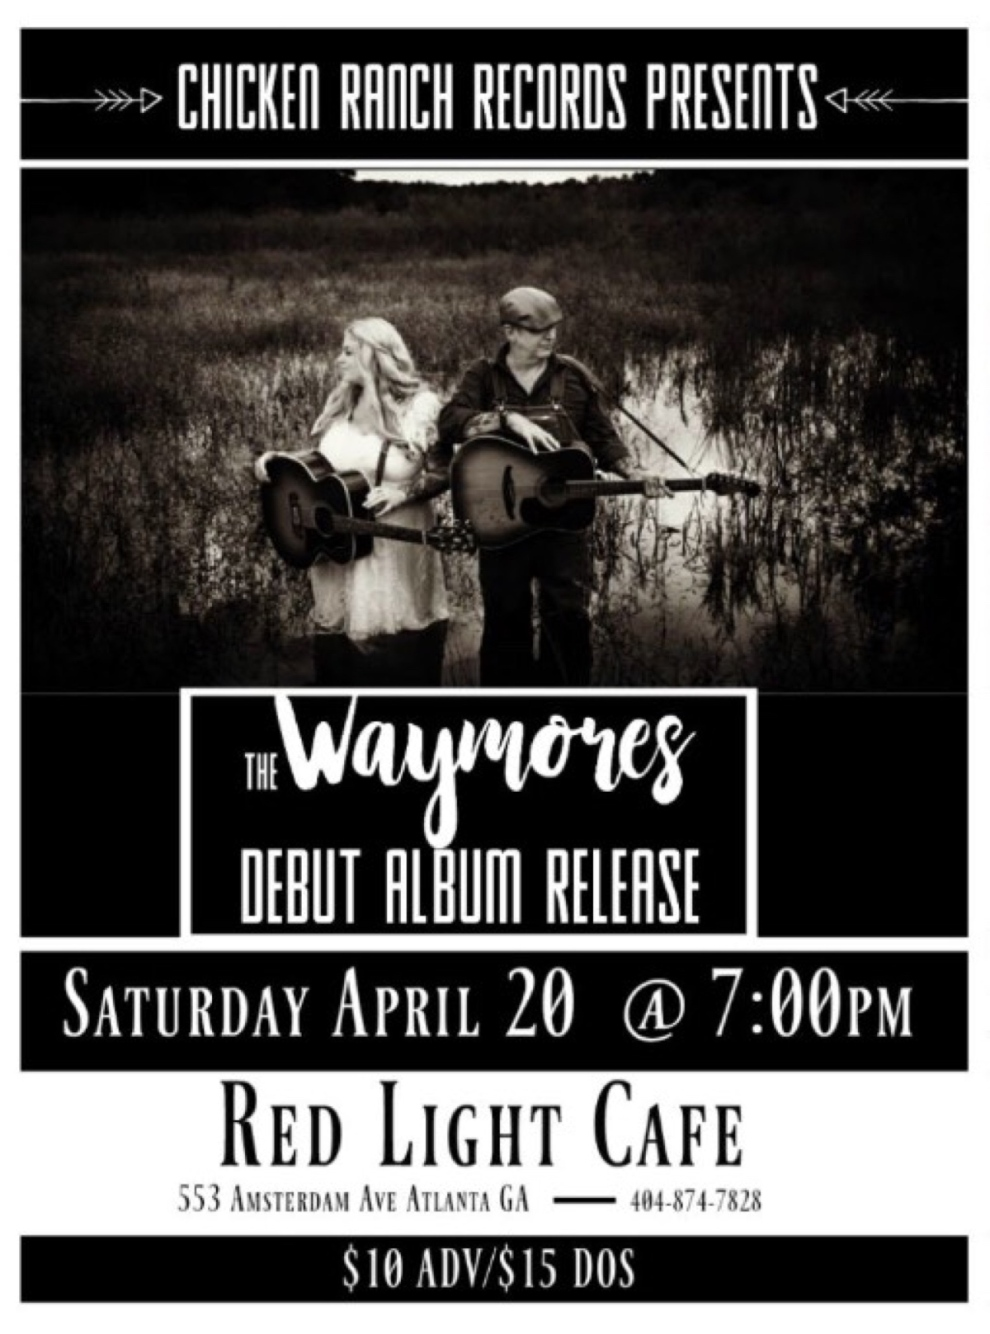 The Waymores Debut Album Release Party At Red Light Cafe Atlanta Ga Apr 20 2019 Poster 1200